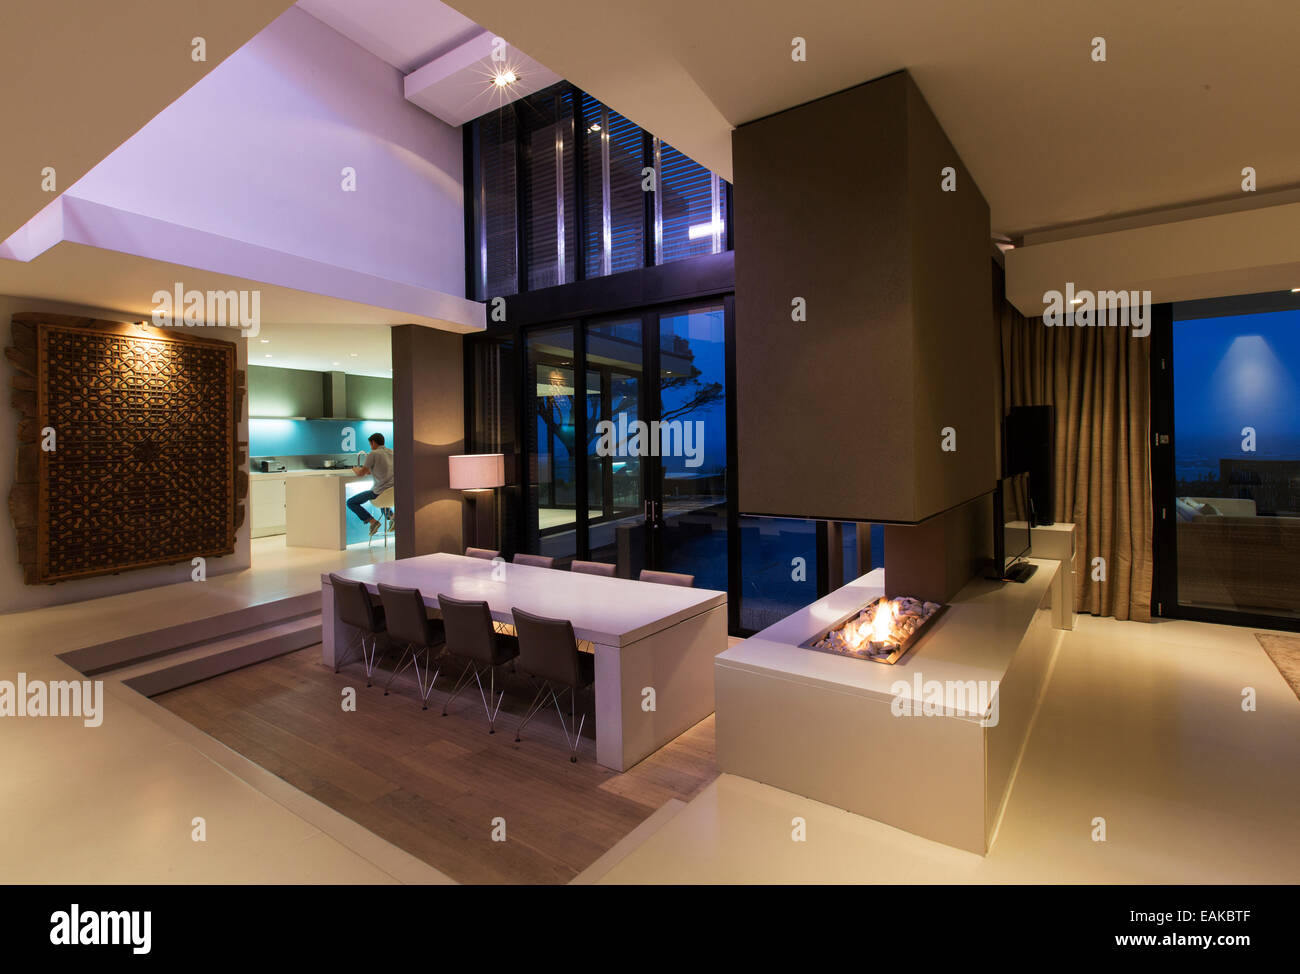 modern mansion dining room. Dining Area In Modern House At Night, Man Kitchen Background Mansion Room S